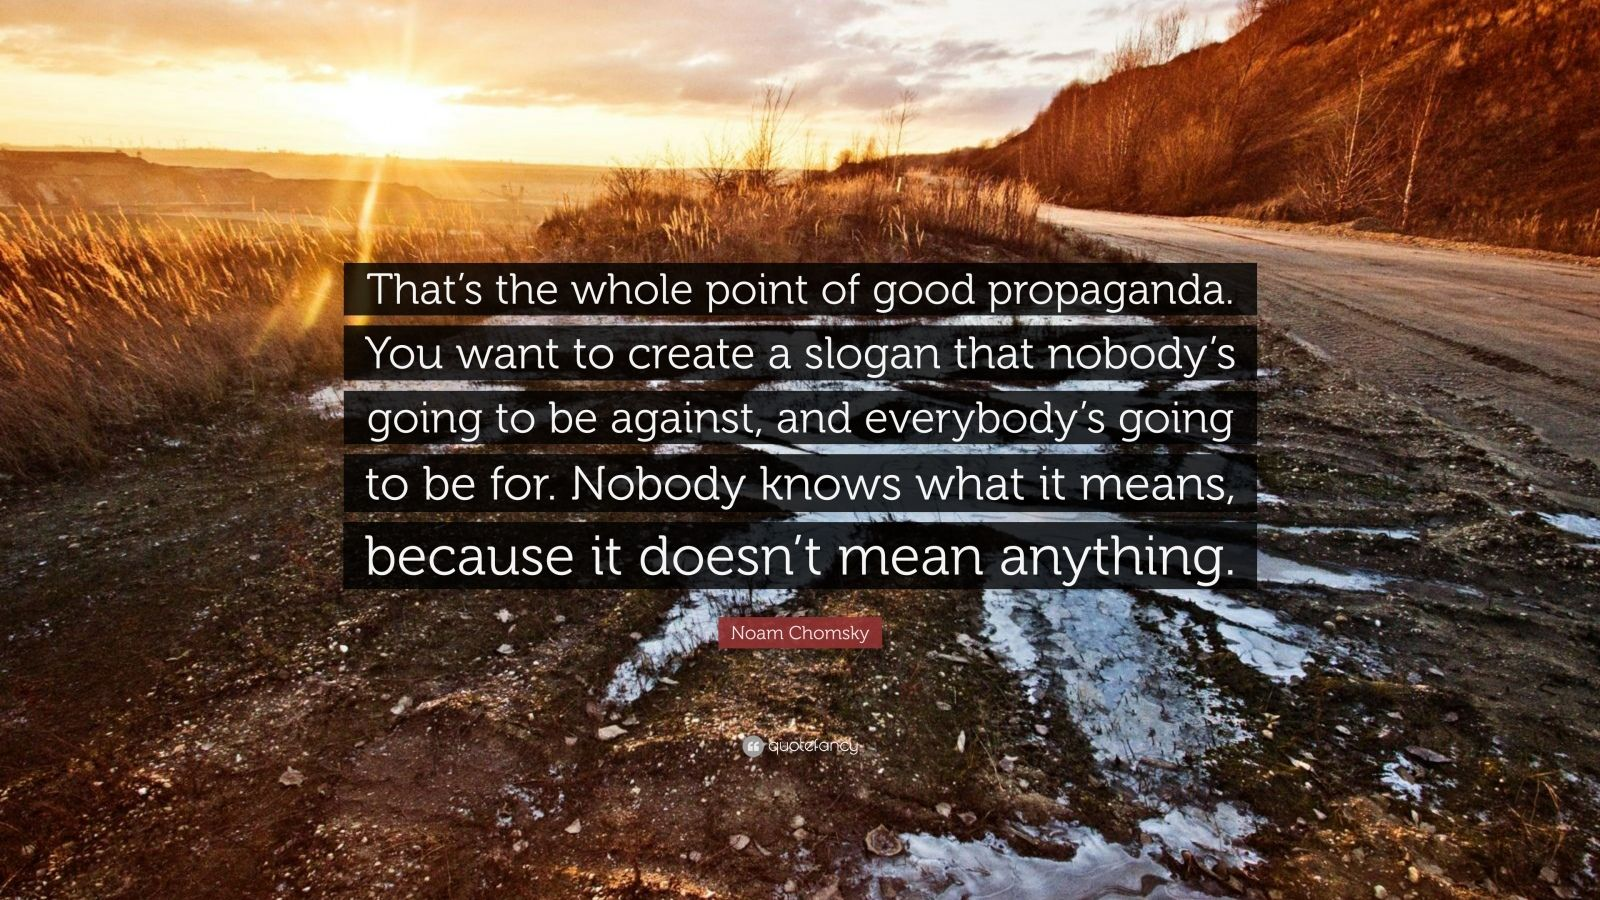 """Noam Chomsky Quote: """"That's the whole point of good propaganda. You want to create a slogan that nobody's going to be against, and everybody's going to be for. Nobody knows what it means, because it doesn't mean anything."""""""